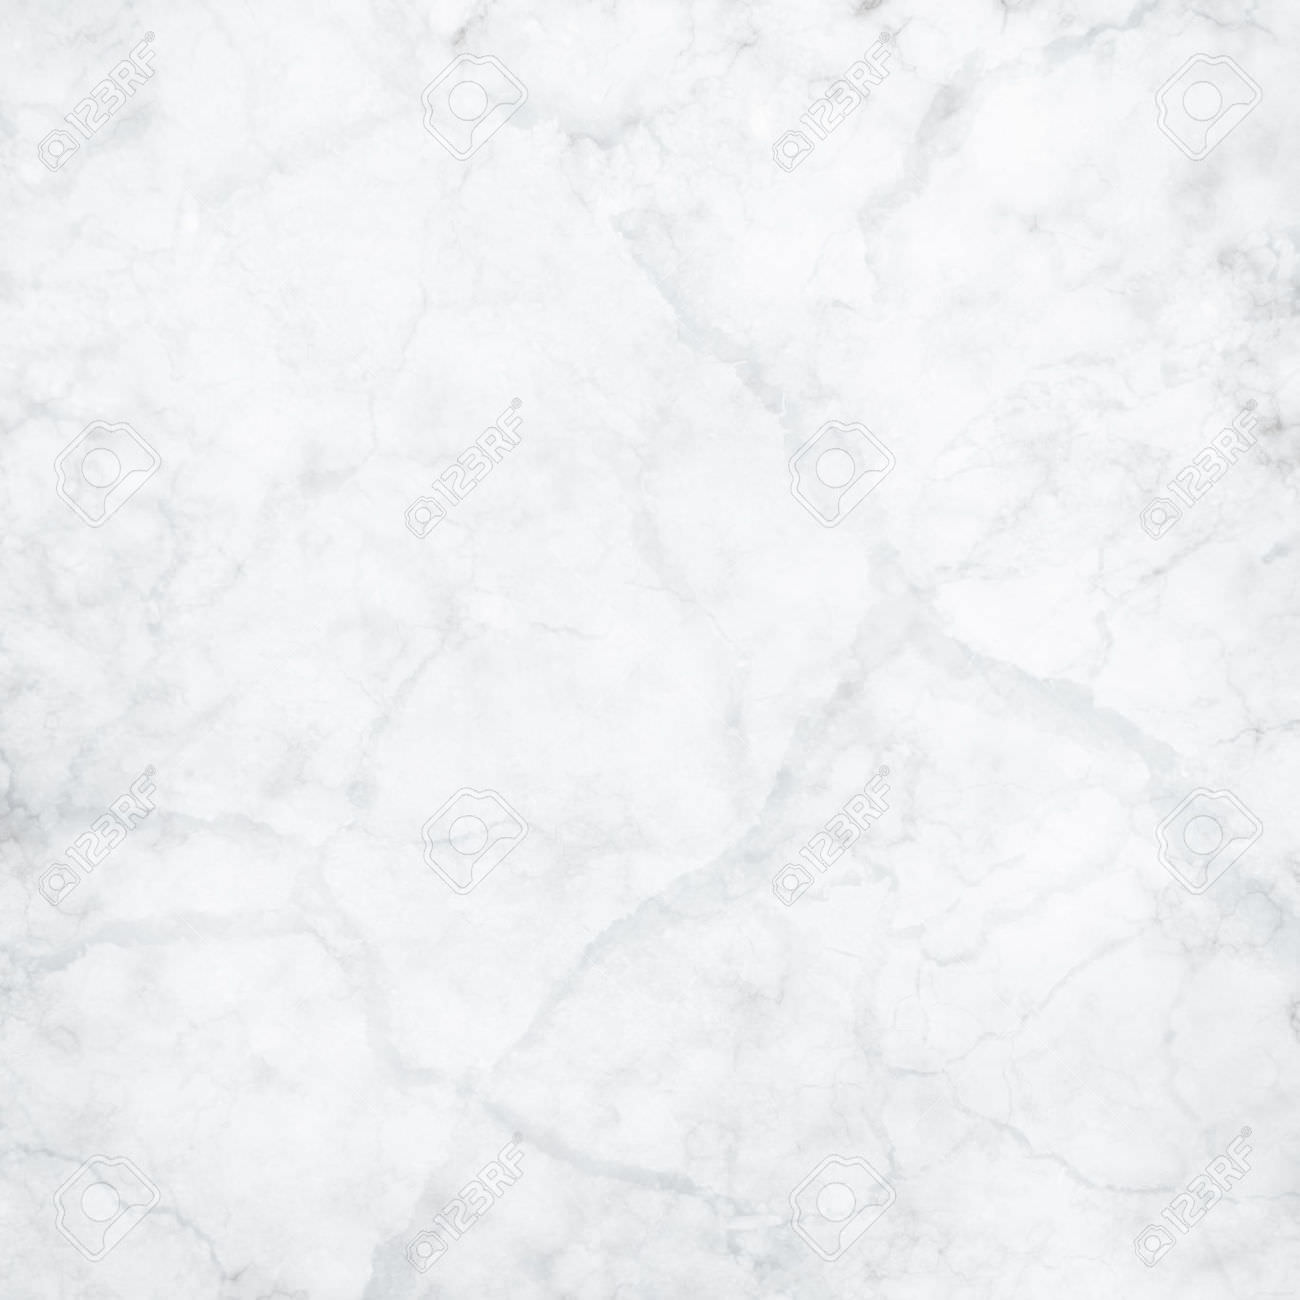 20+ Amazing Marble Patterns, Textures | Patterns | Design ...